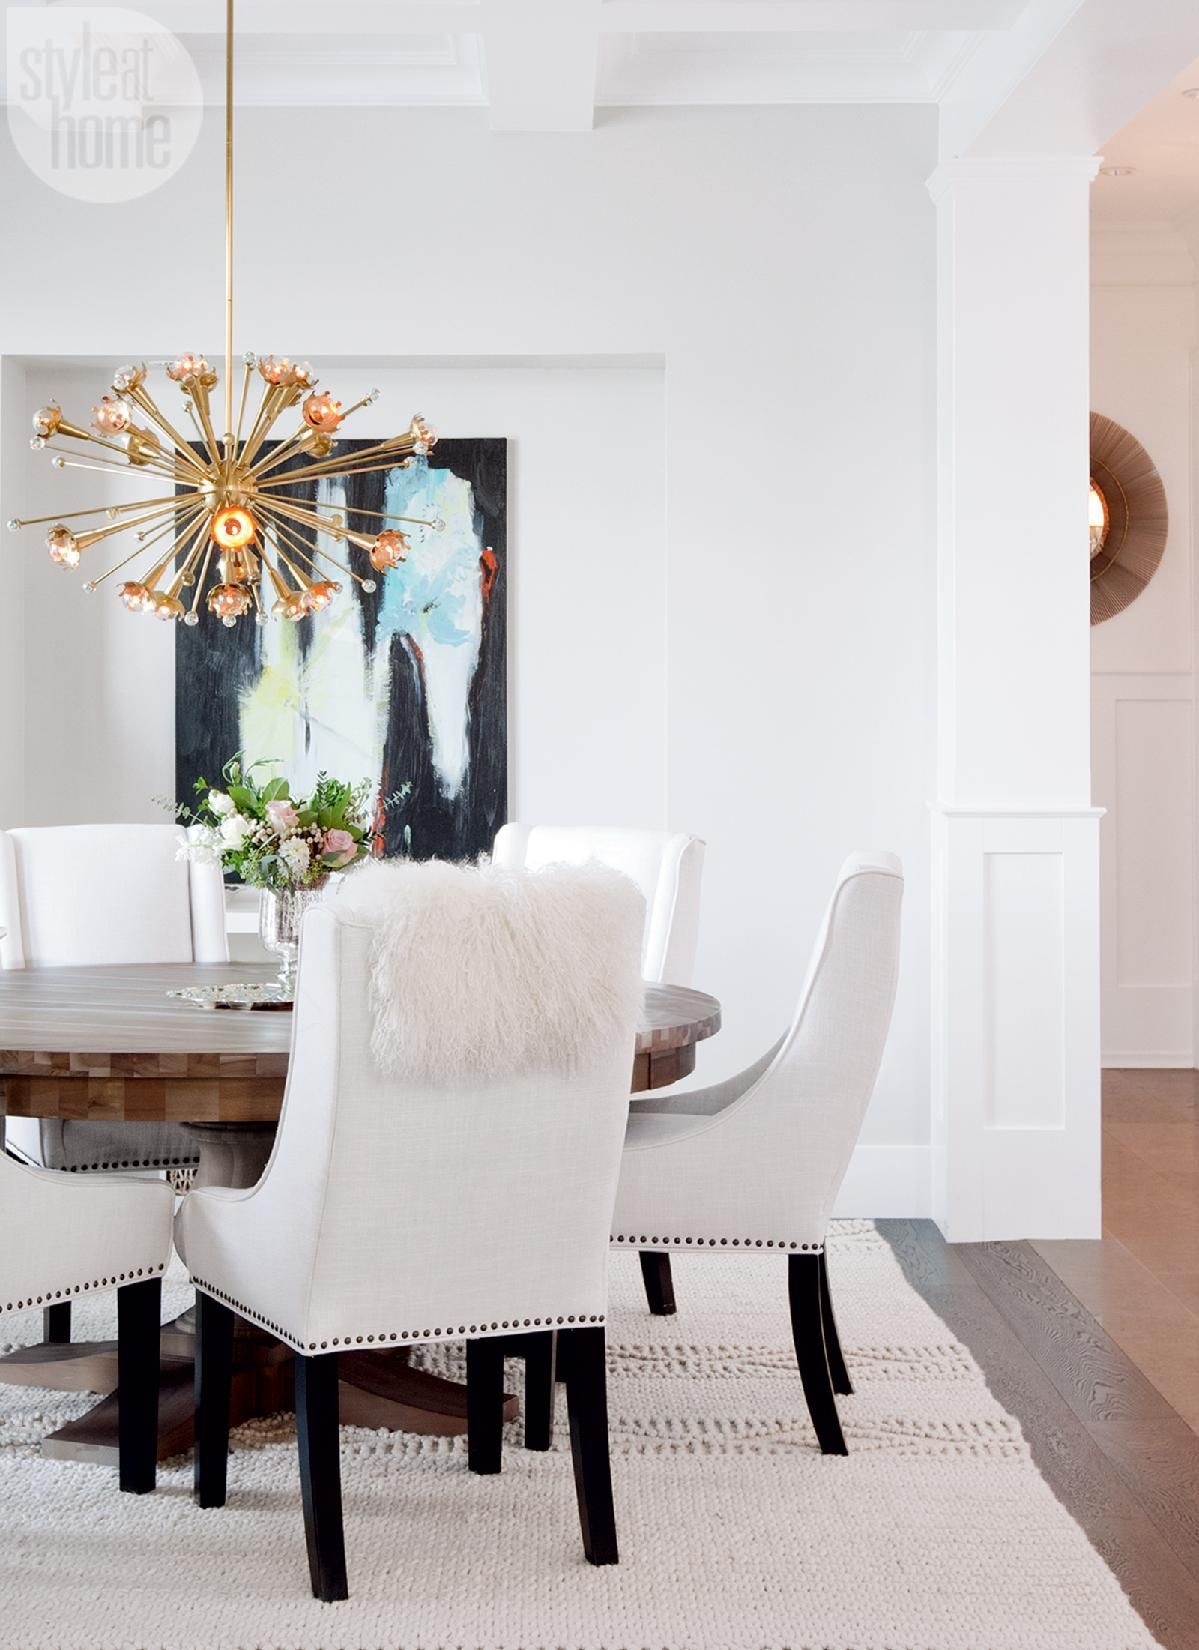 Mixing Stylesu2014In The Dining Room, Tanya Likes The Juxtaposition Of The  Modern Sputnik Inspired Chandelier With The Traditional Coffered Ceiling.